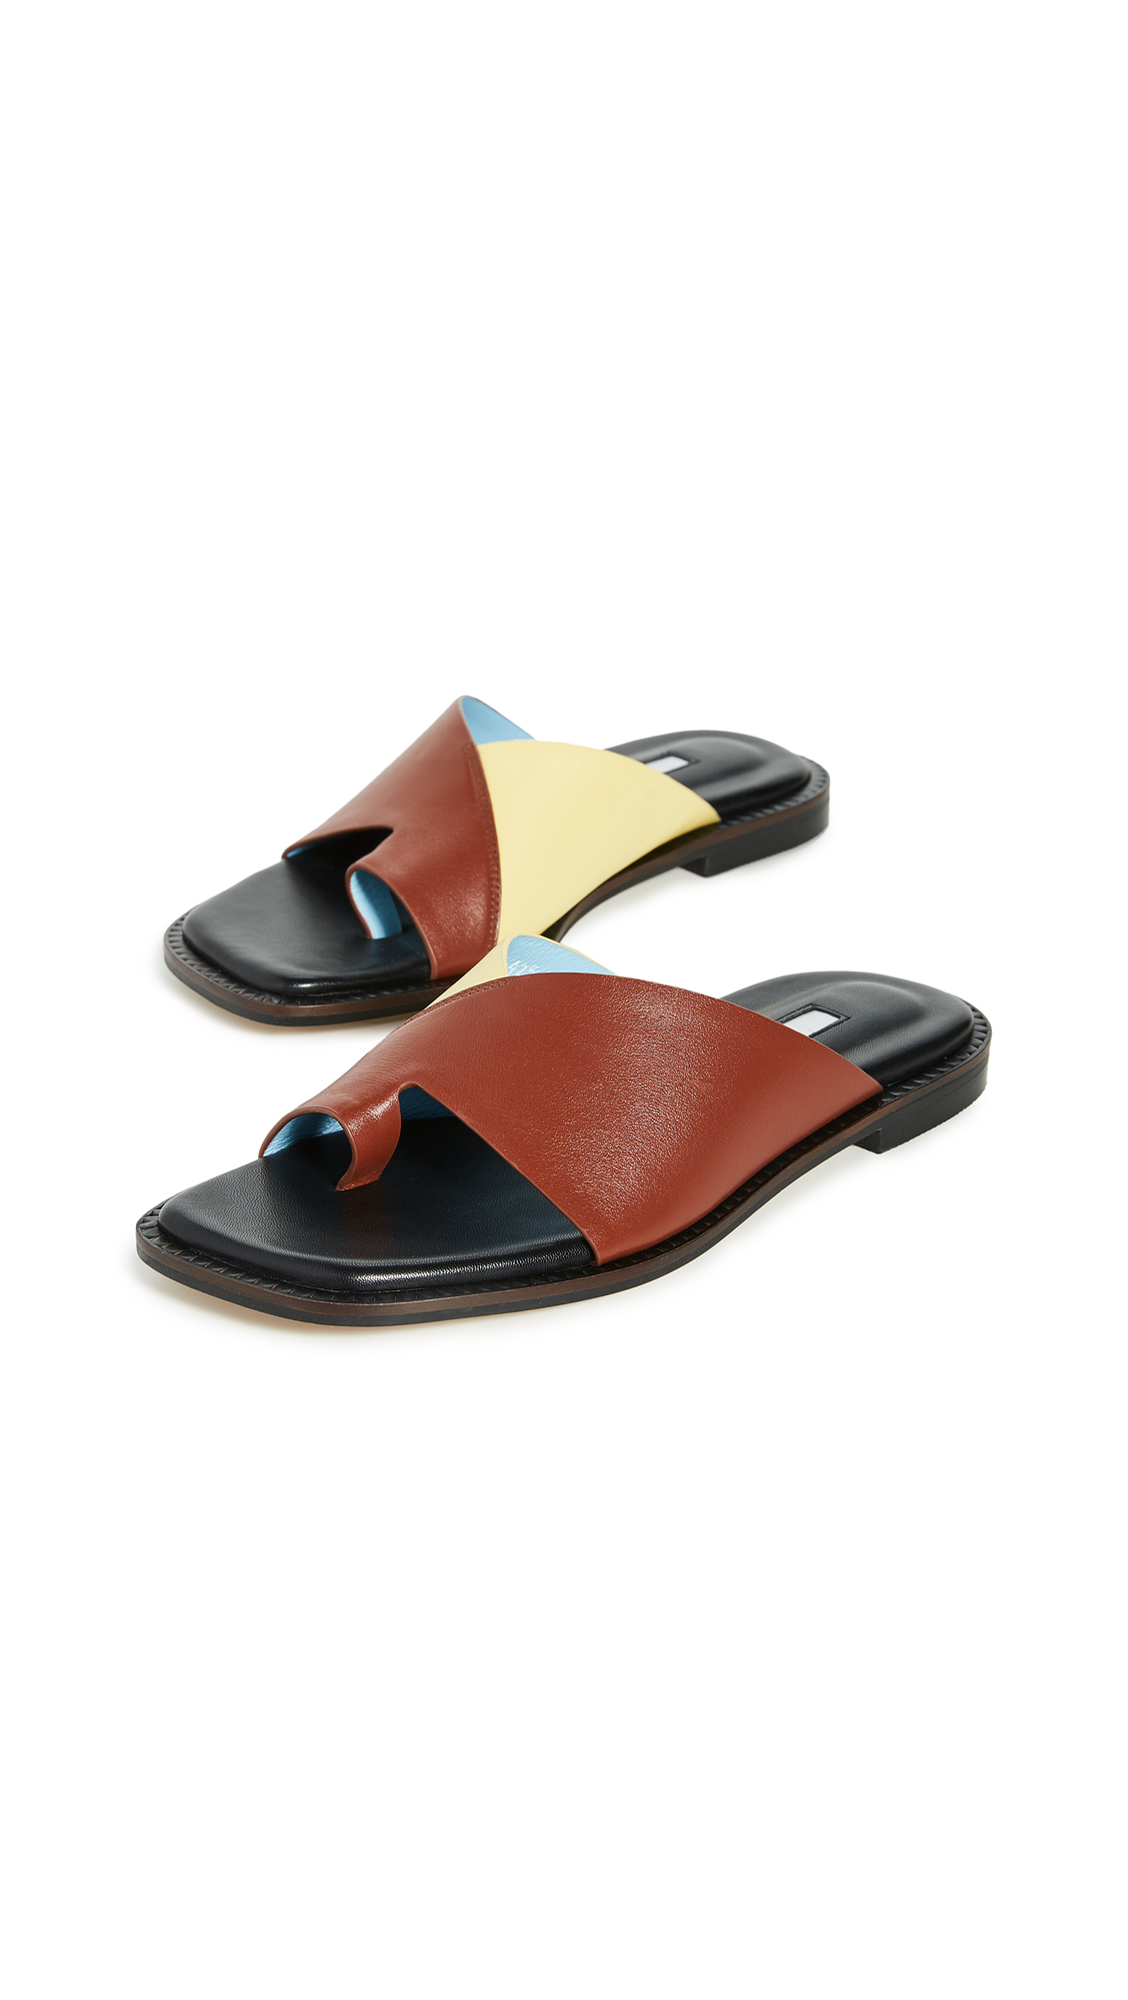 Yuul Yie Origami Sandals – 30% Off Sale